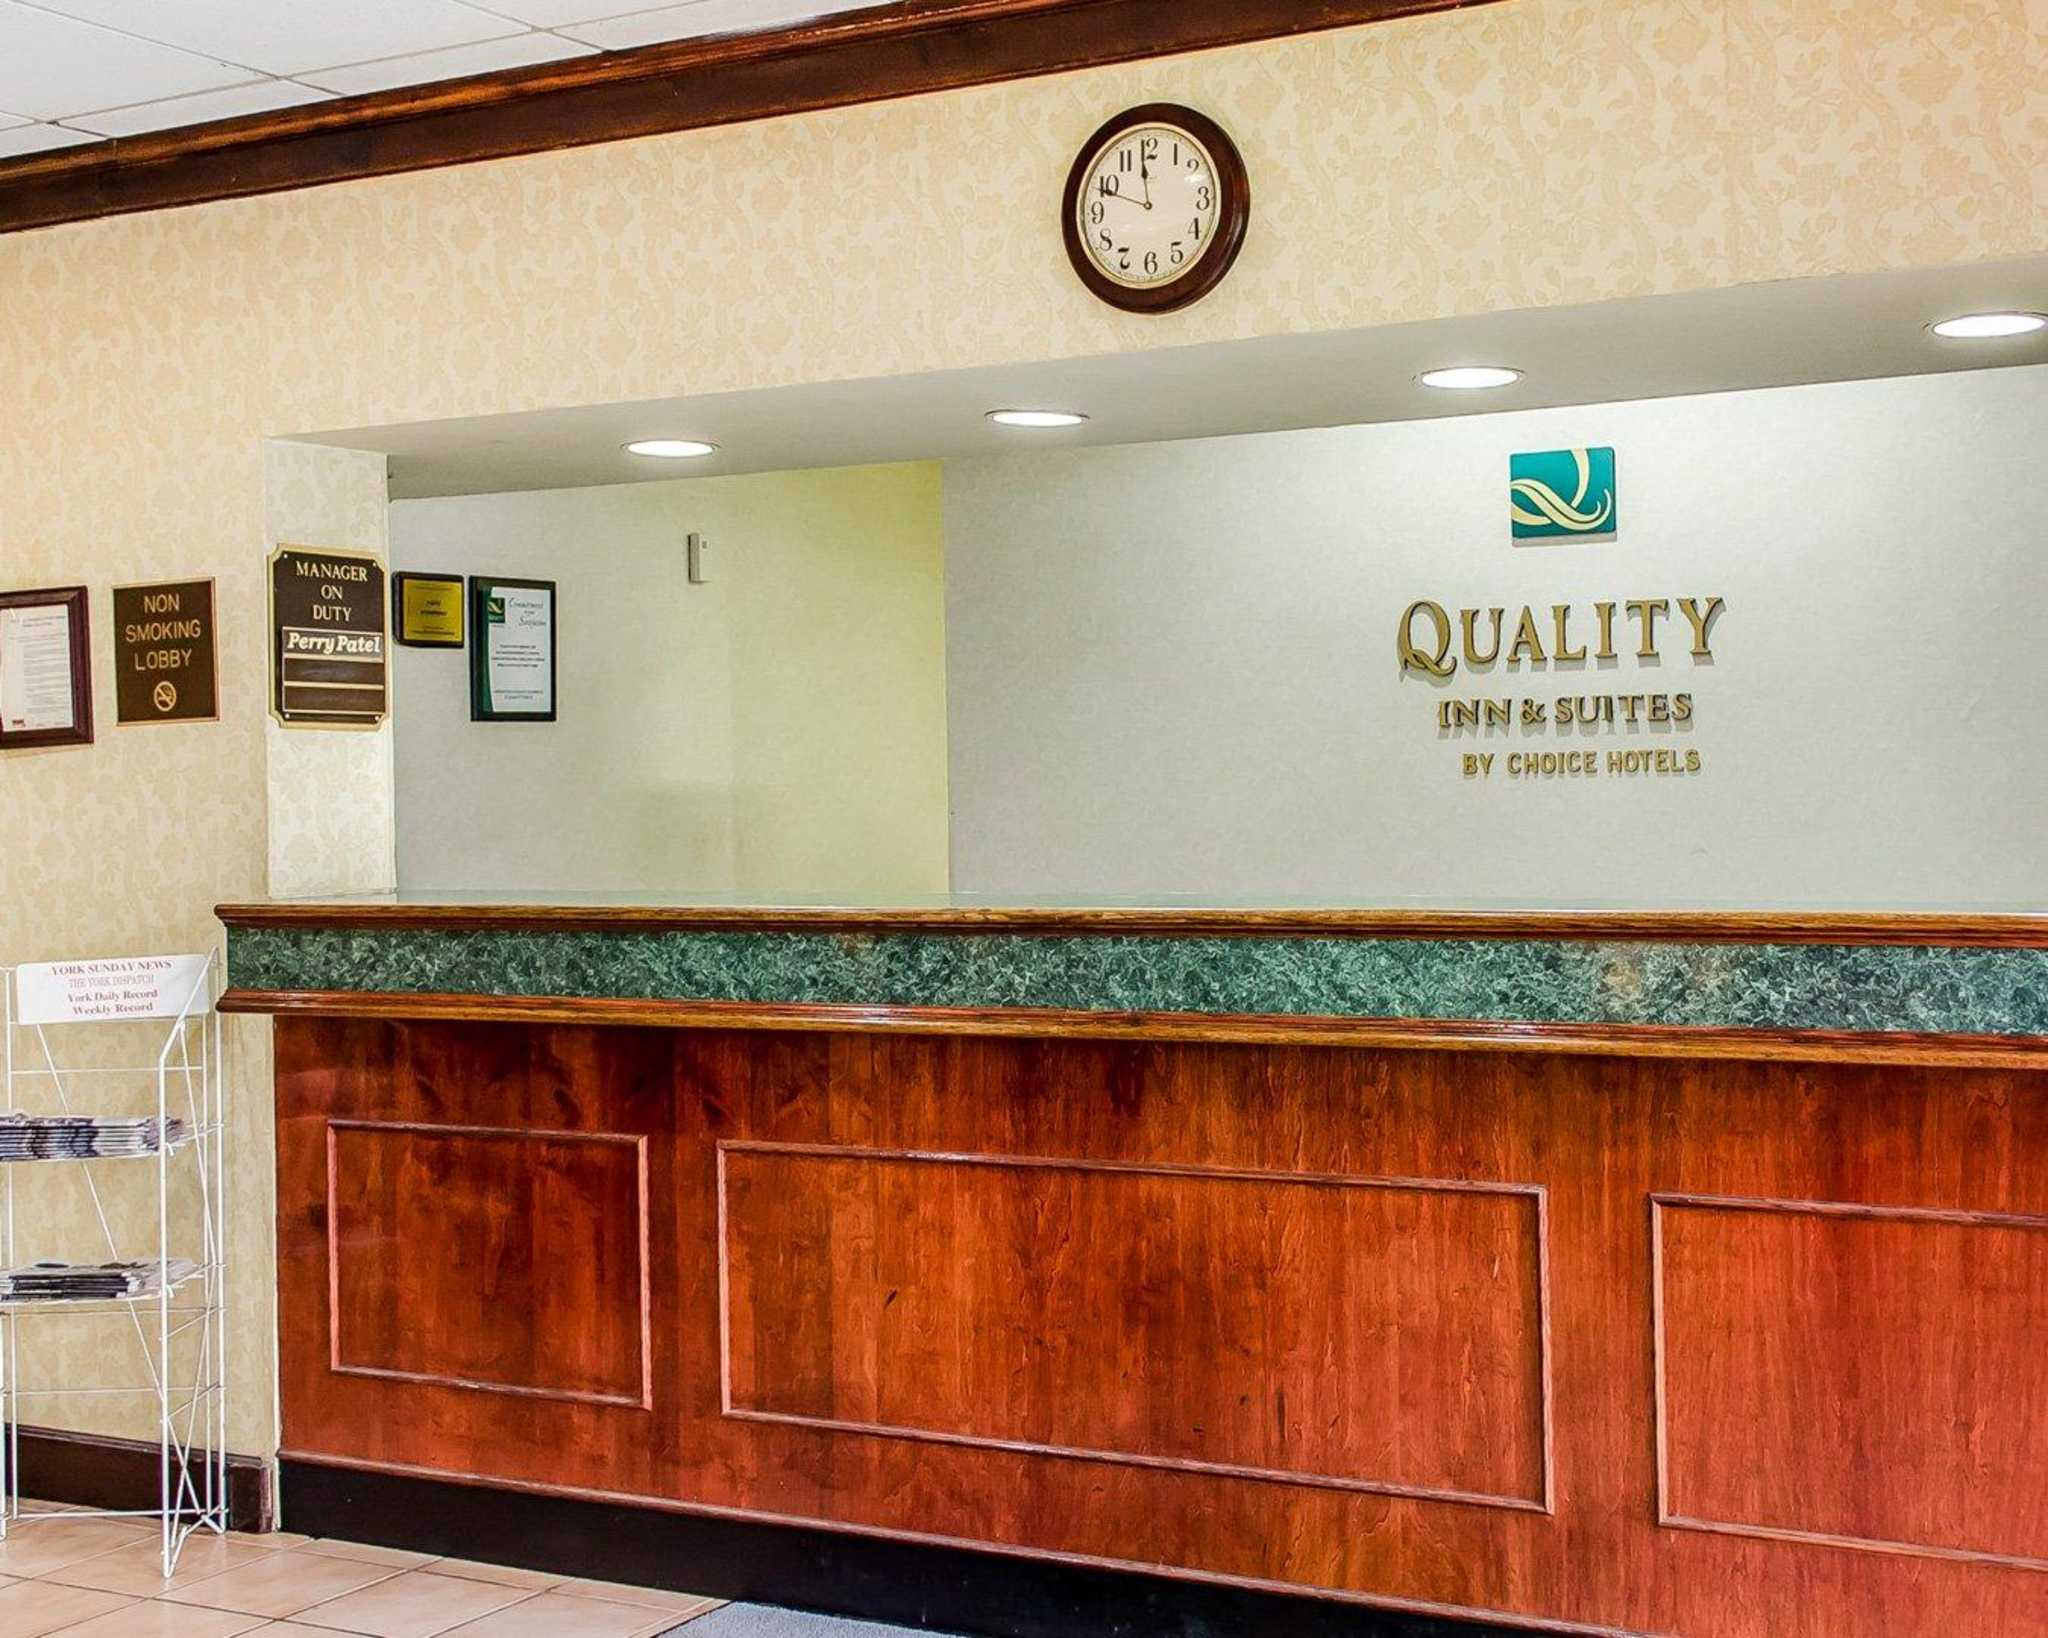 Quality Inn & Suites image 4